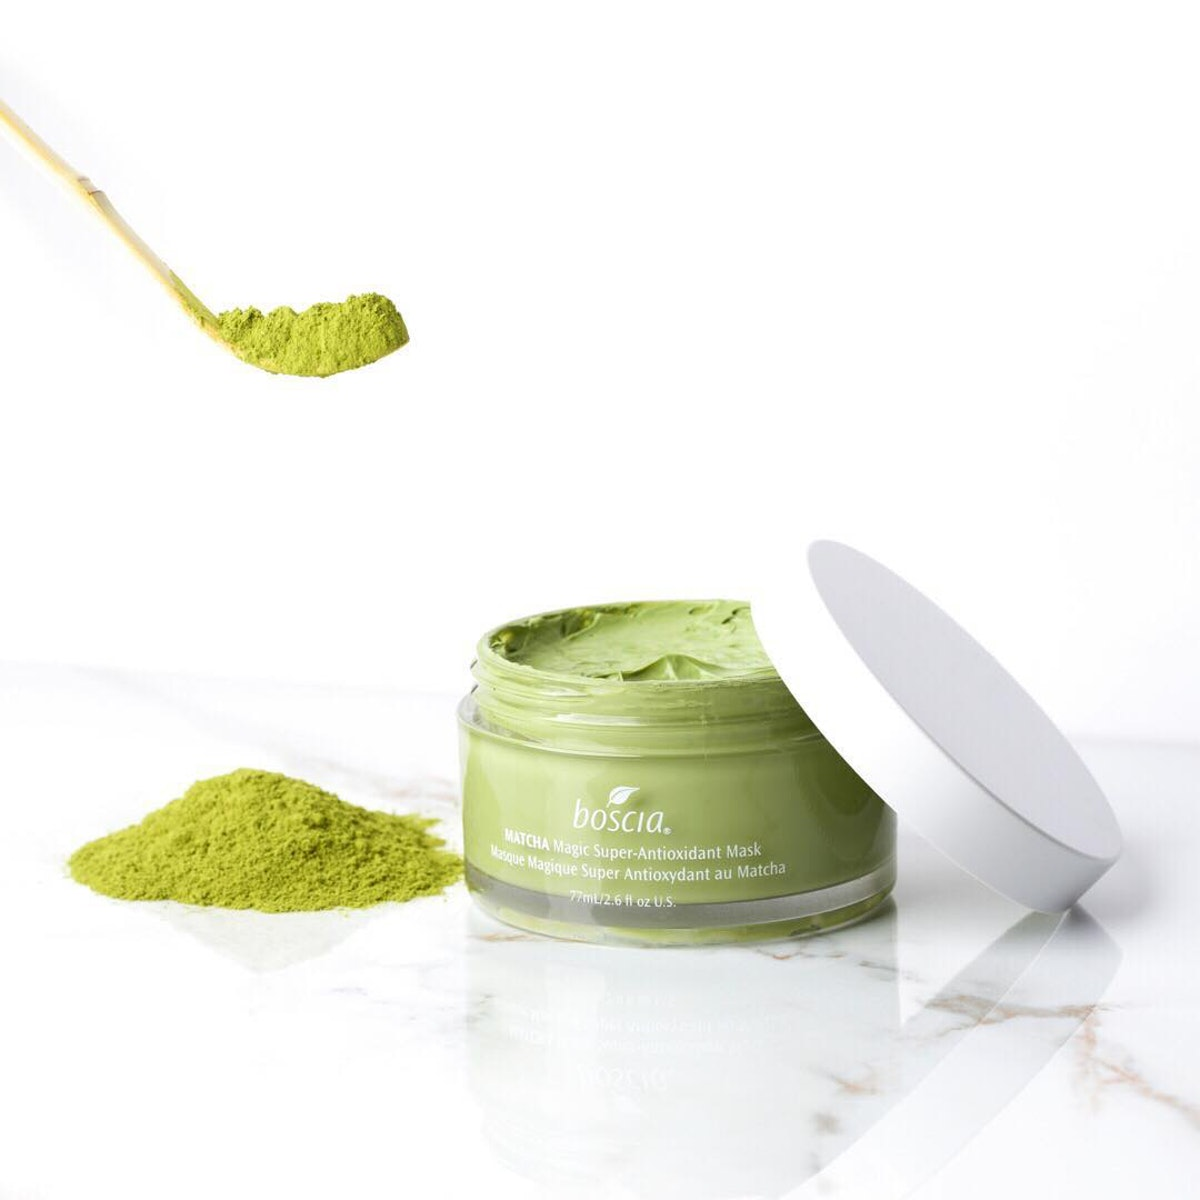 Boscia's Matcha Magic Mask Is The Soothing Green Mask Your Middle School Heart Will Love